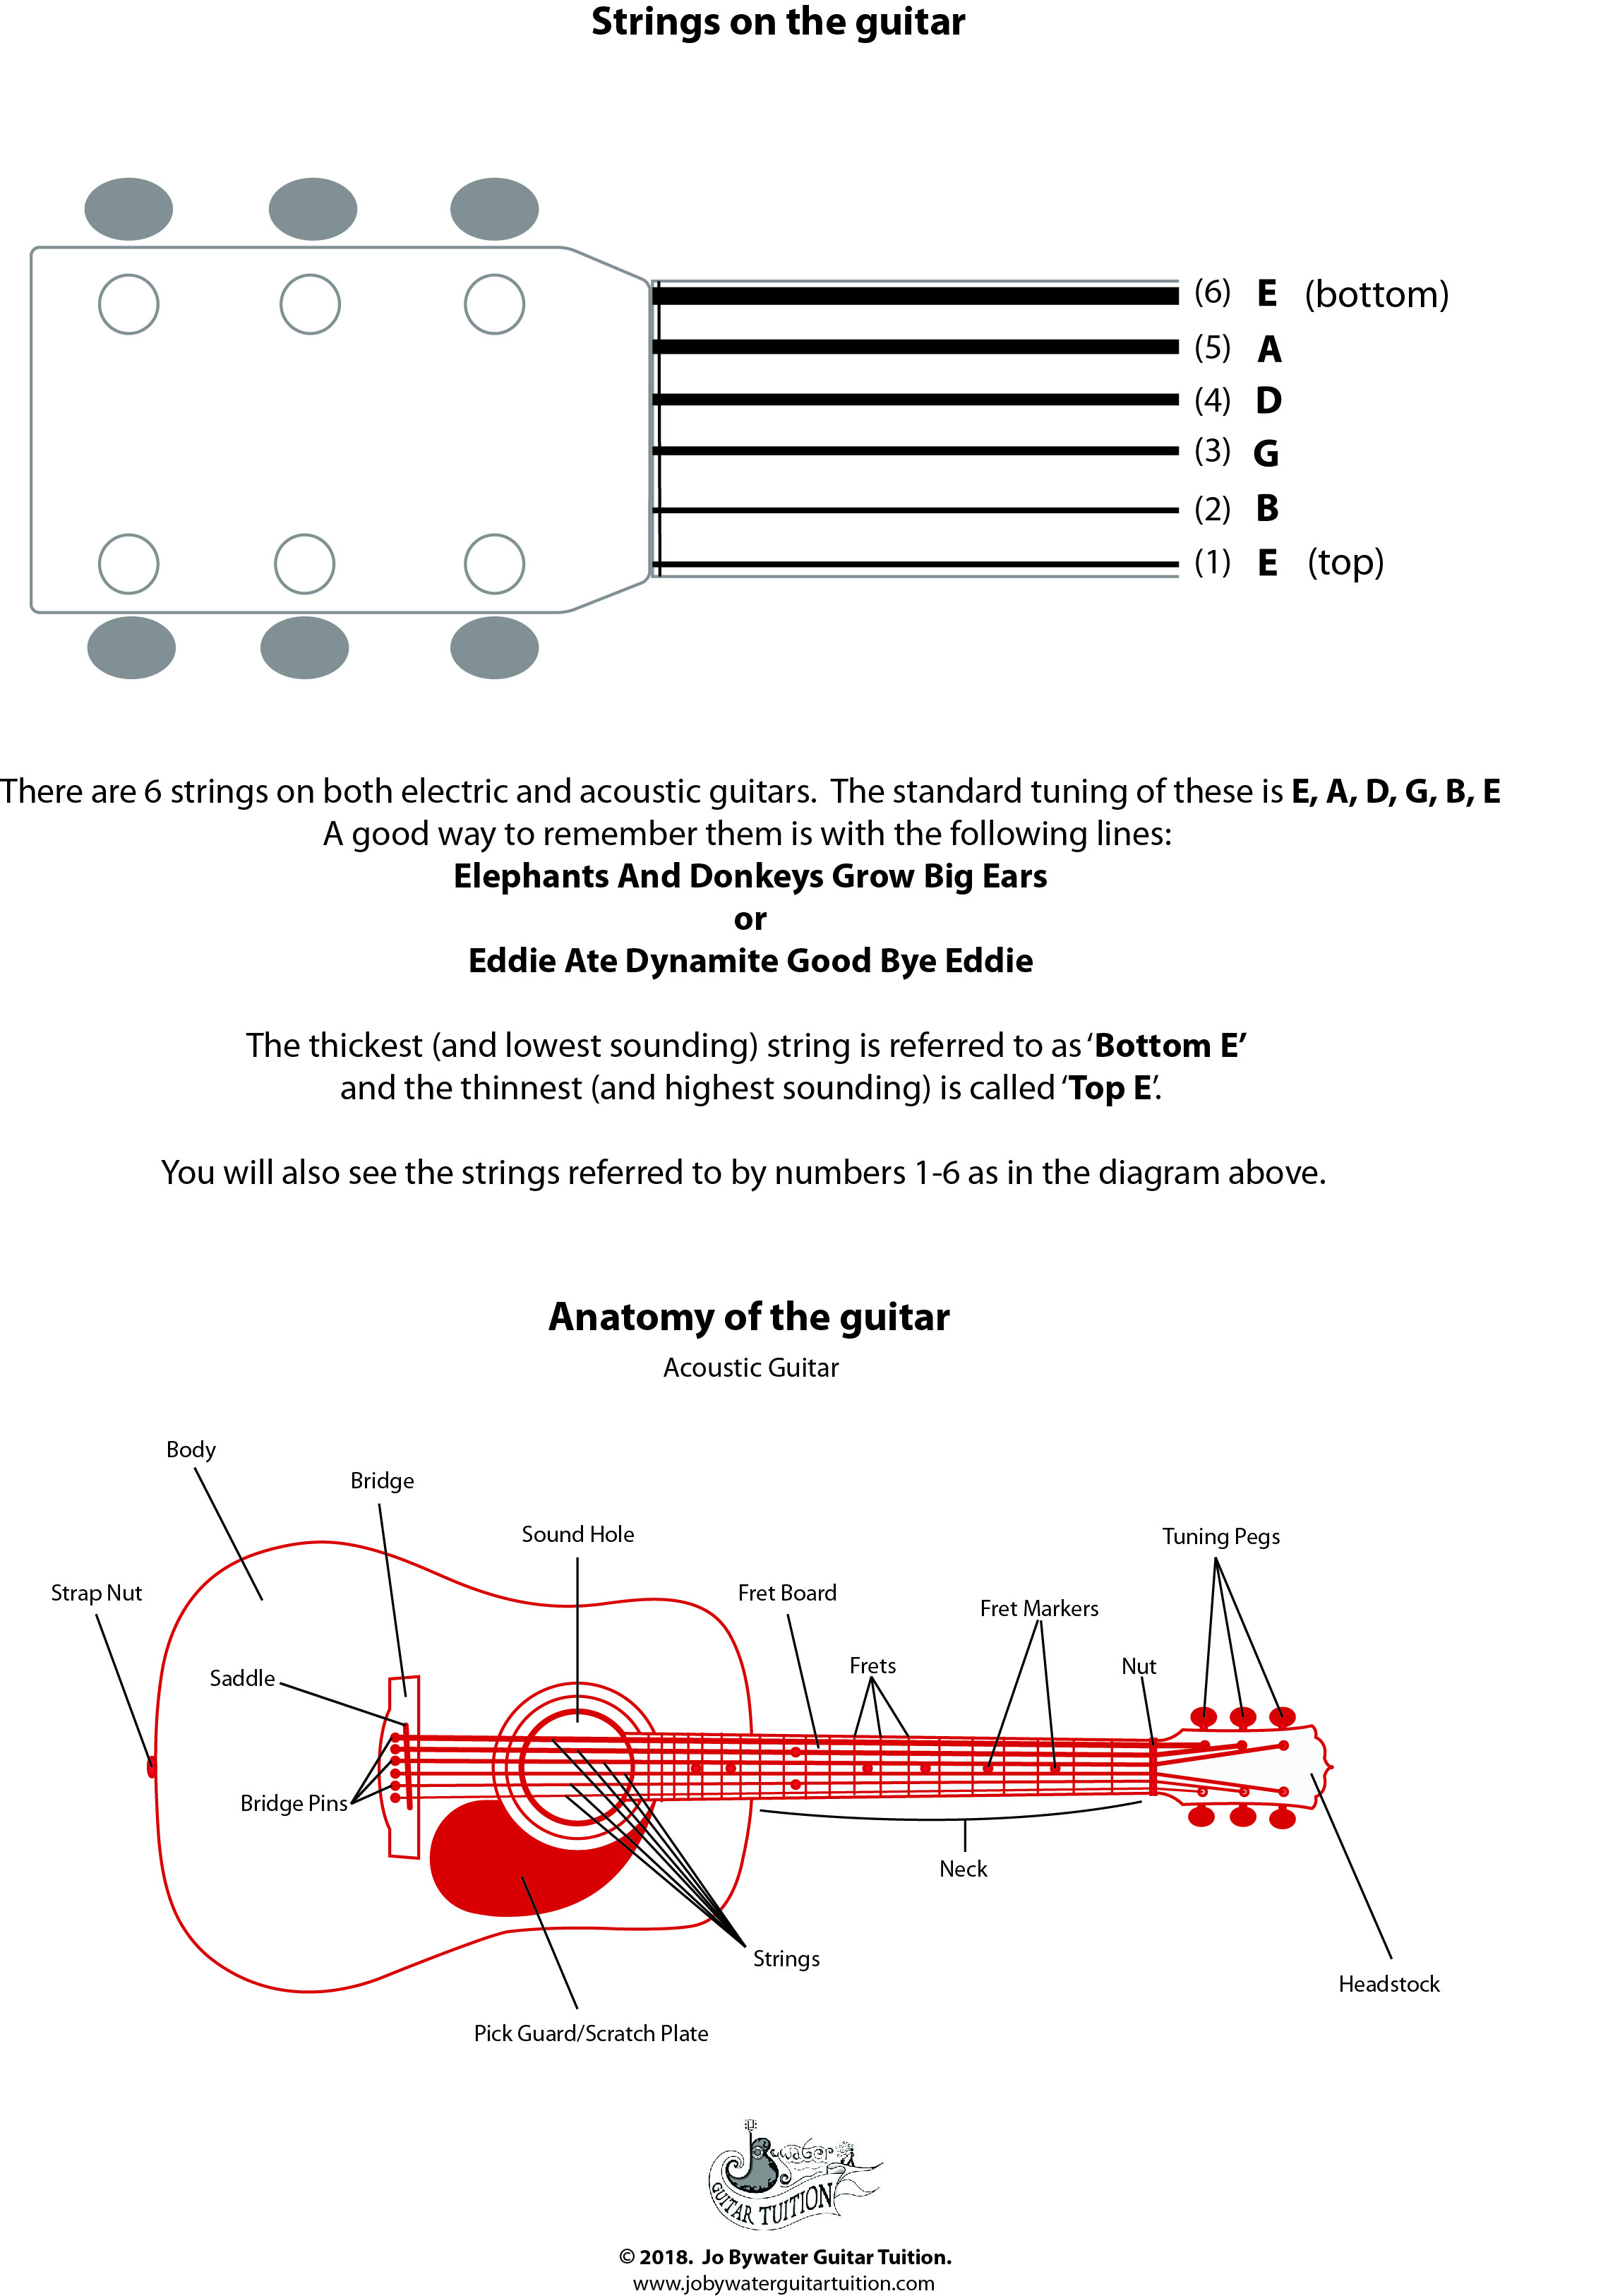 free resources jo bywater guitar tuition acoustic guitar labelled diagram jo bywater guitar tuition [ 2278 x 3252 Pixel ]